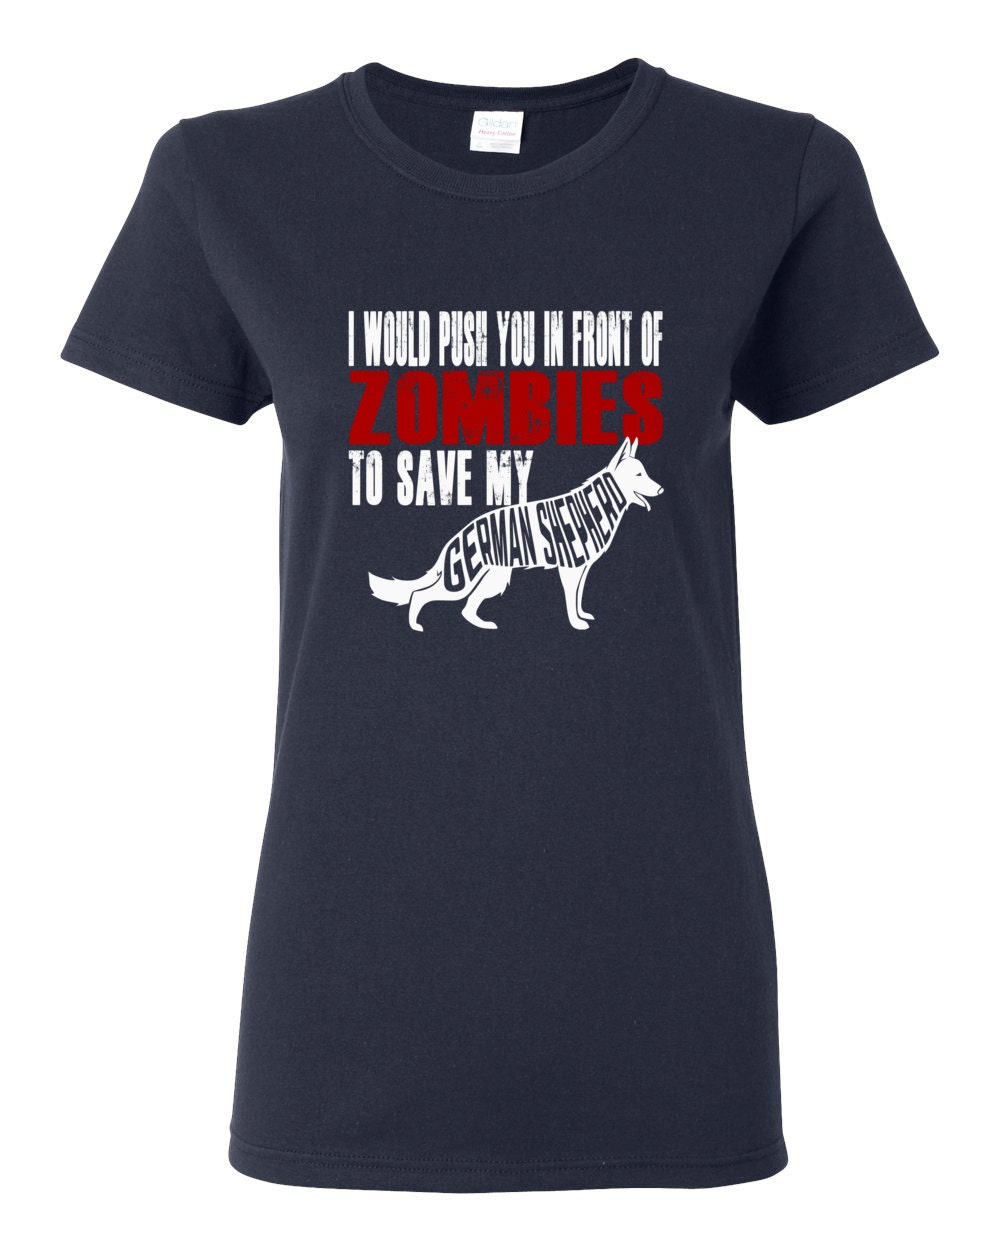 German Shepherd Womens Shirt - I Would Push You In Front Of Zombies To Save My German Shepherd Womens T-shirt